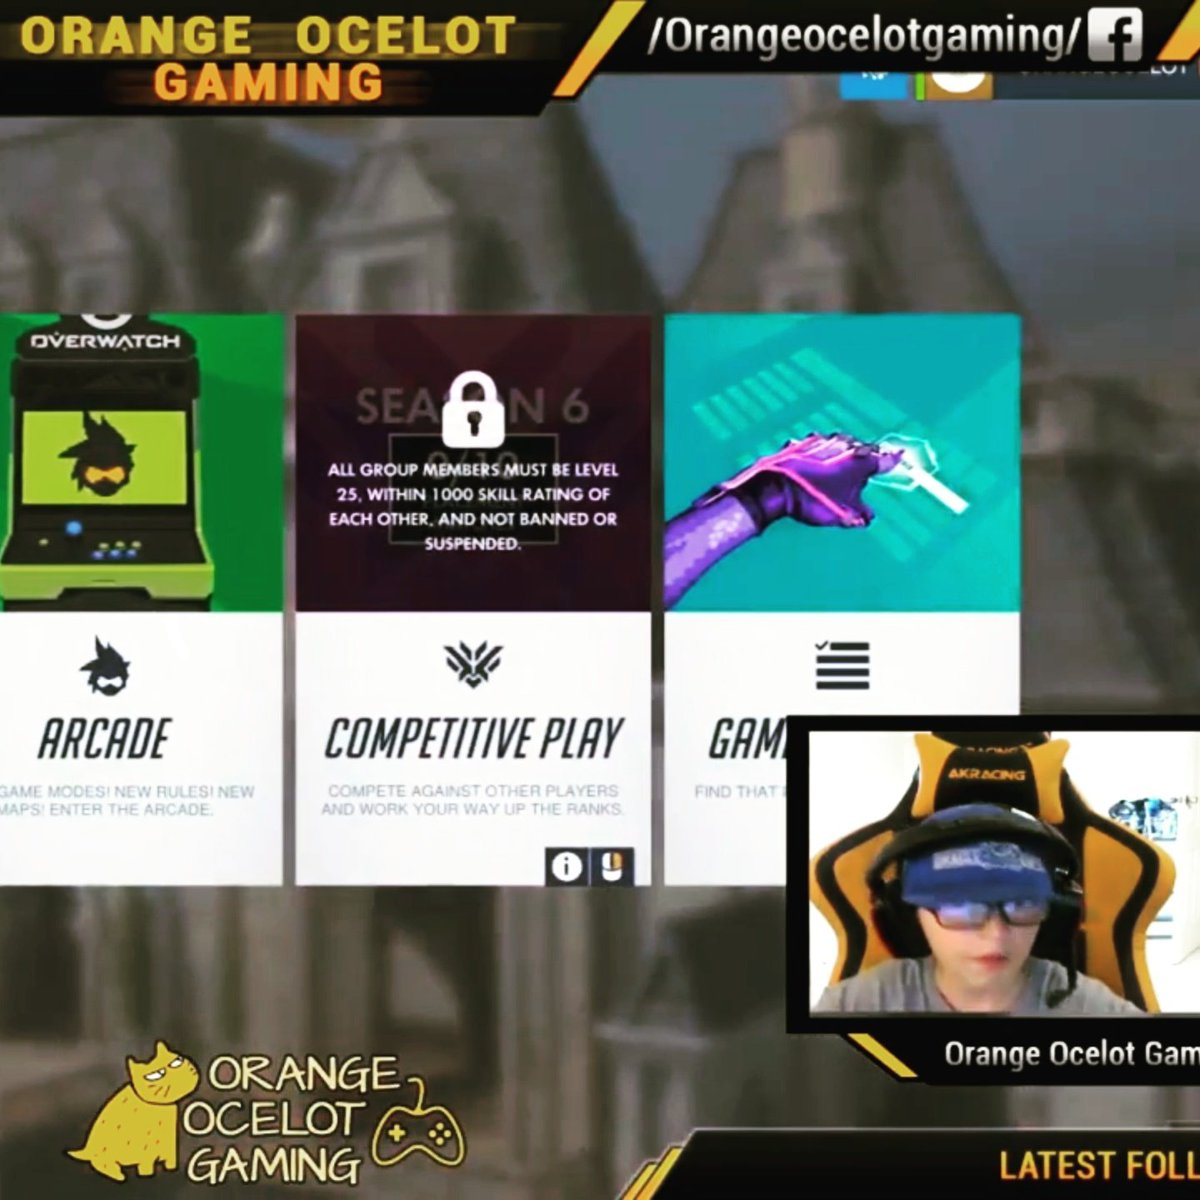 Its my first ever LIVE STREAM!  Watch here:  https:// youtu.be/gmyCuNhi-H0  &nbsp;    #overwatch #pcgaming #SupportSmallStreamers #overwatchhalloween (tmrw)<br>http://pic.twitter.com/AeAAJCtfWf